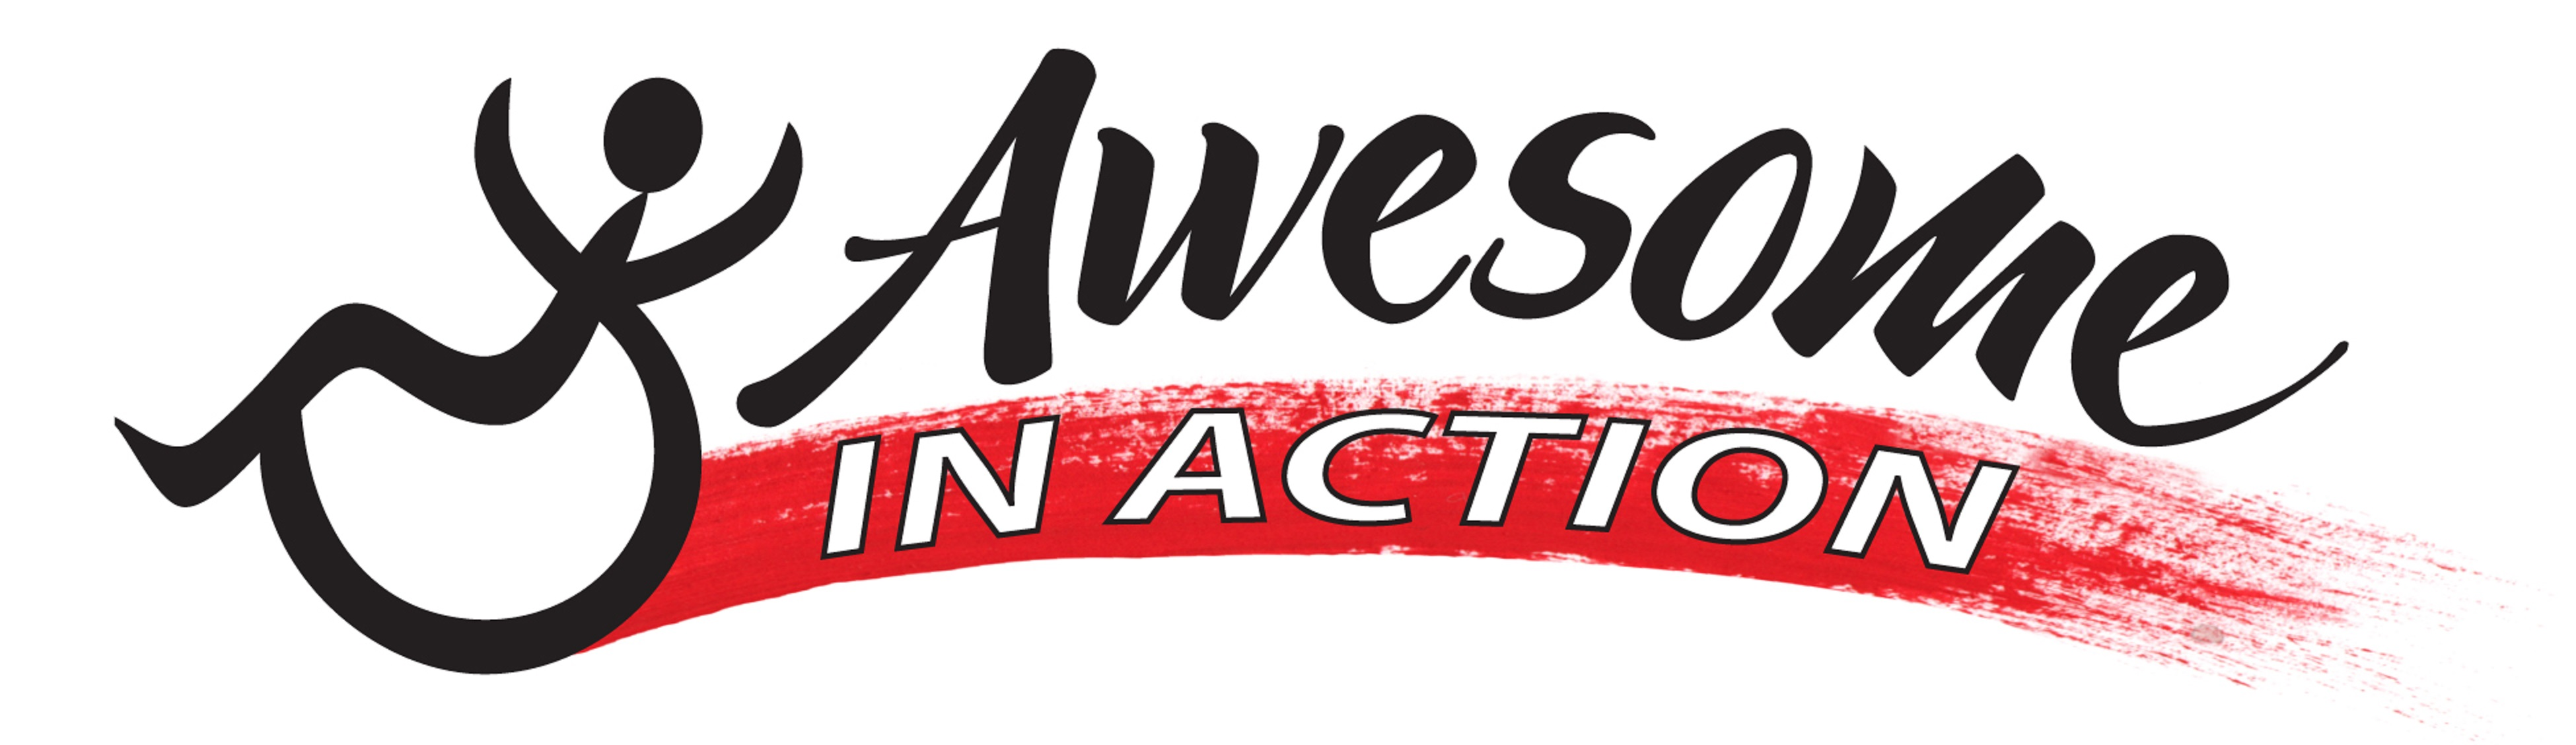 Awesome in Action